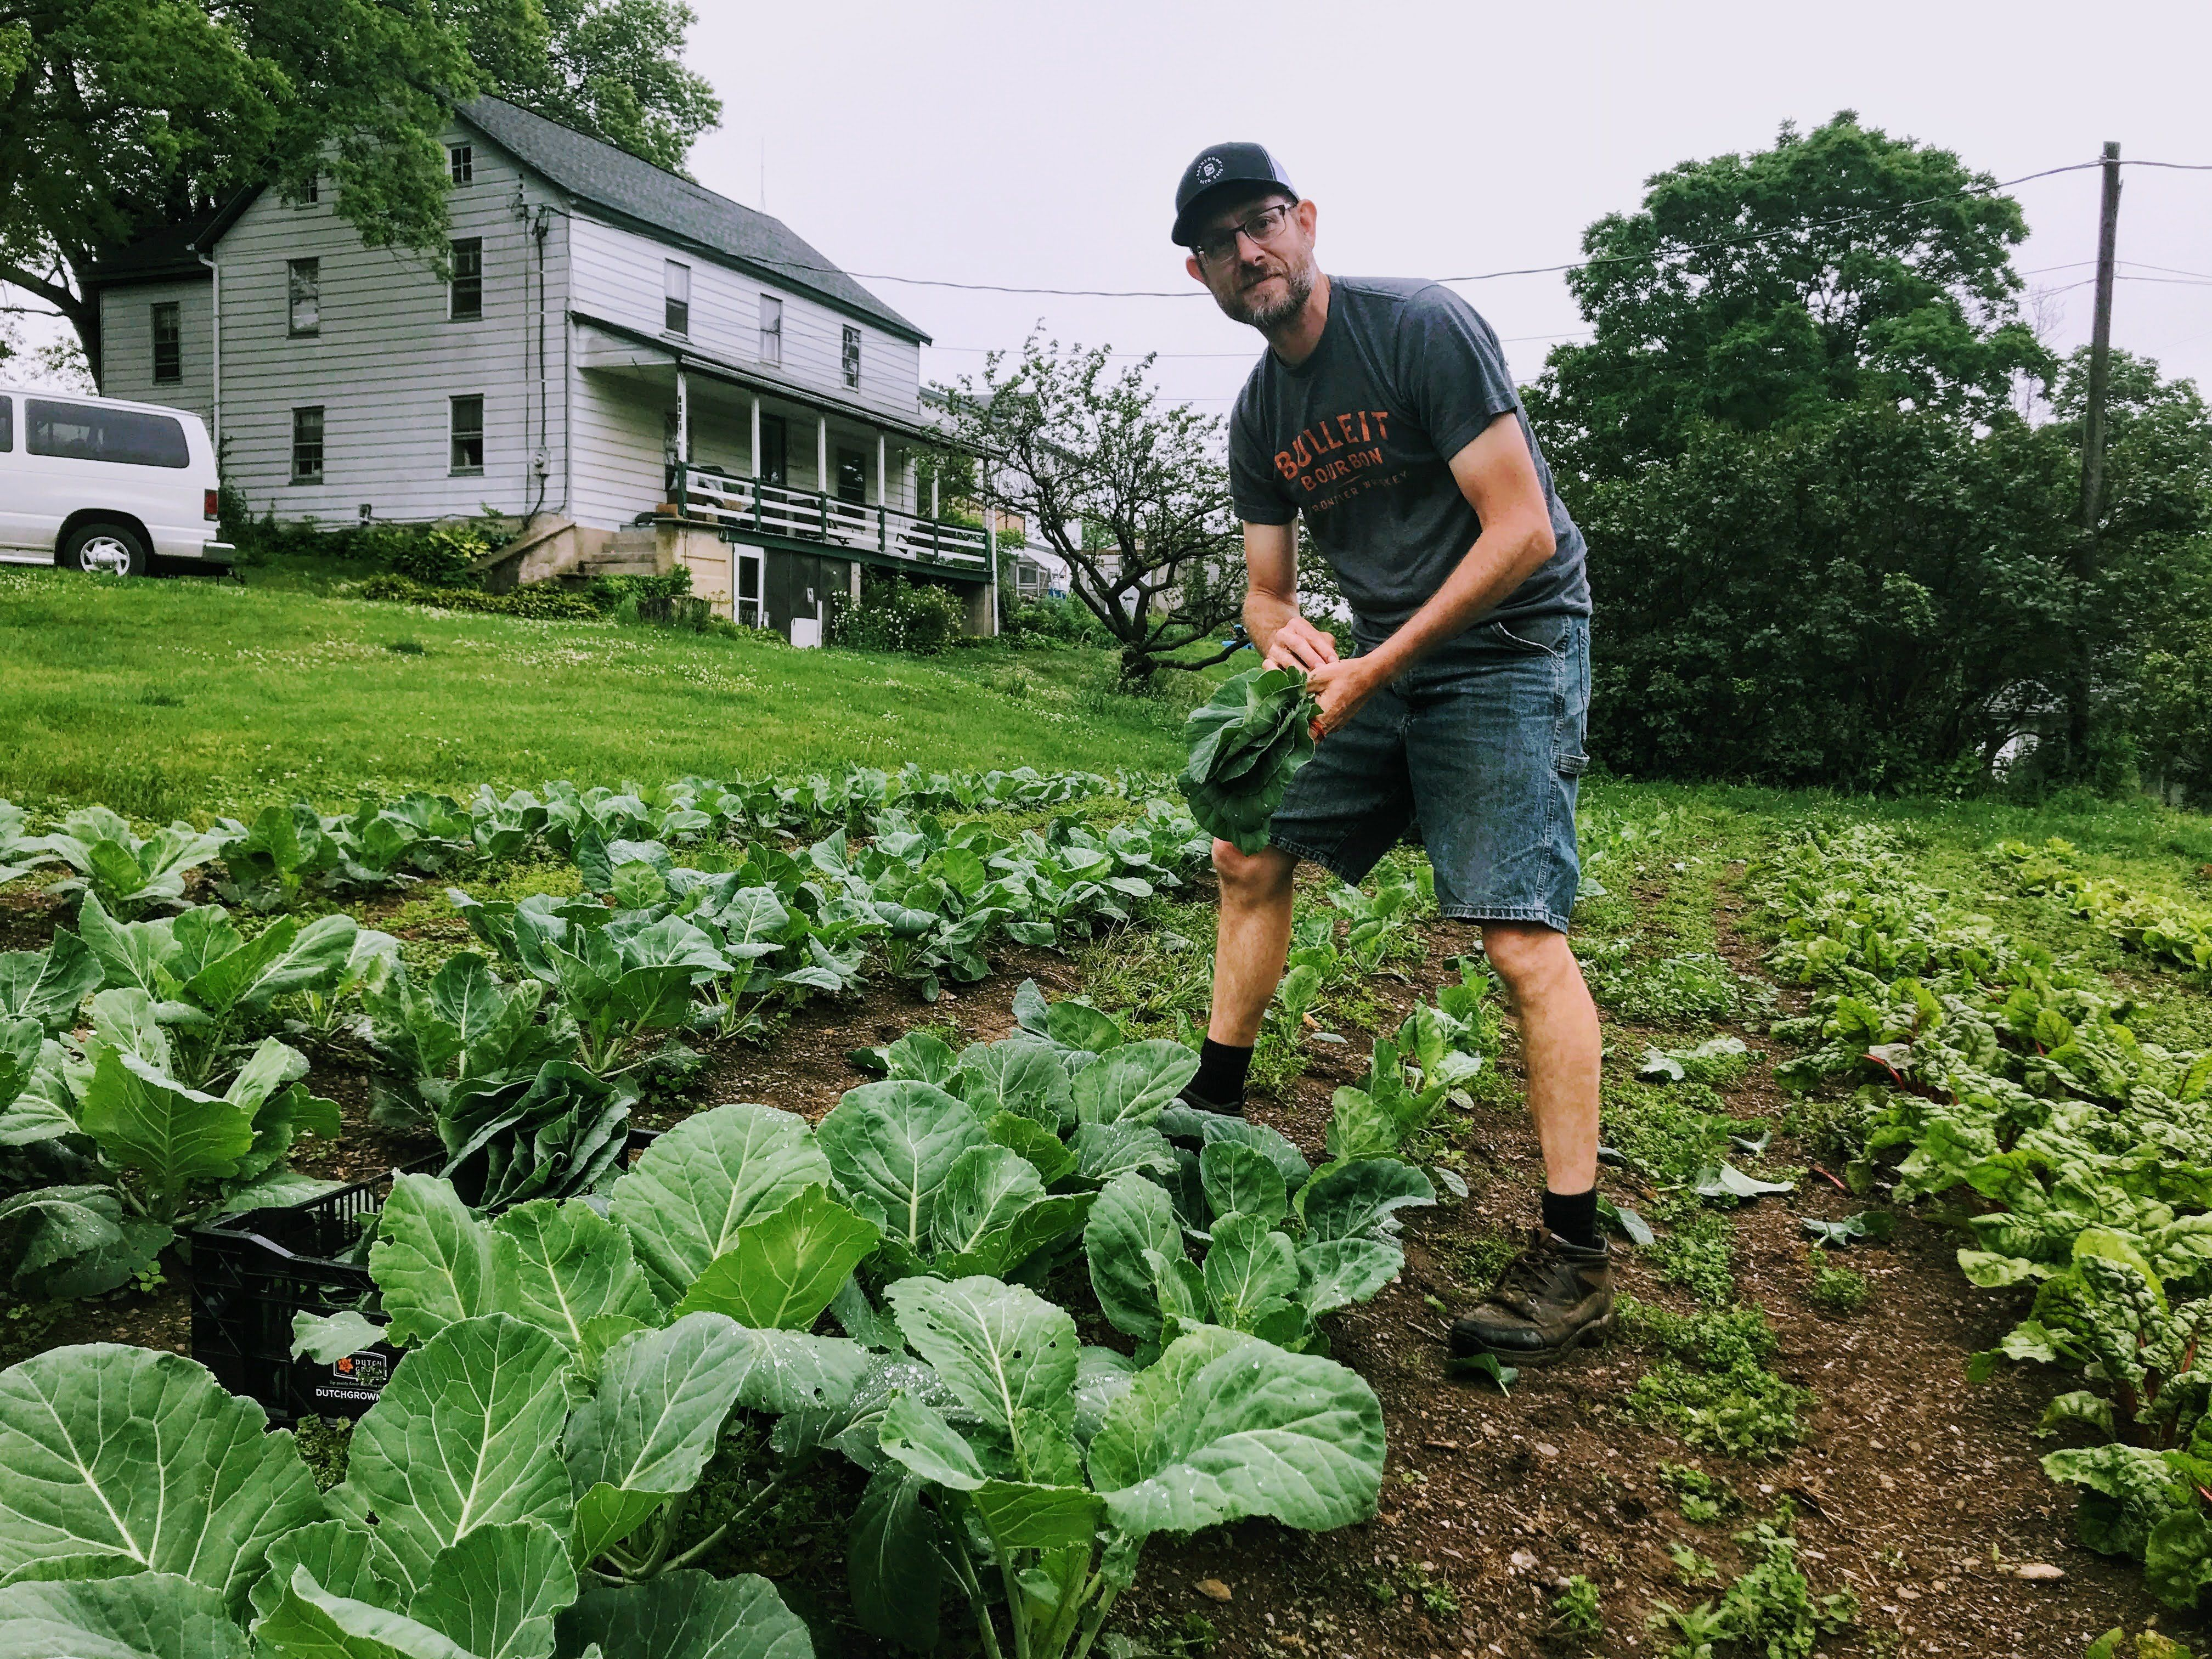 Farmer learns how to save veggies from the bugs